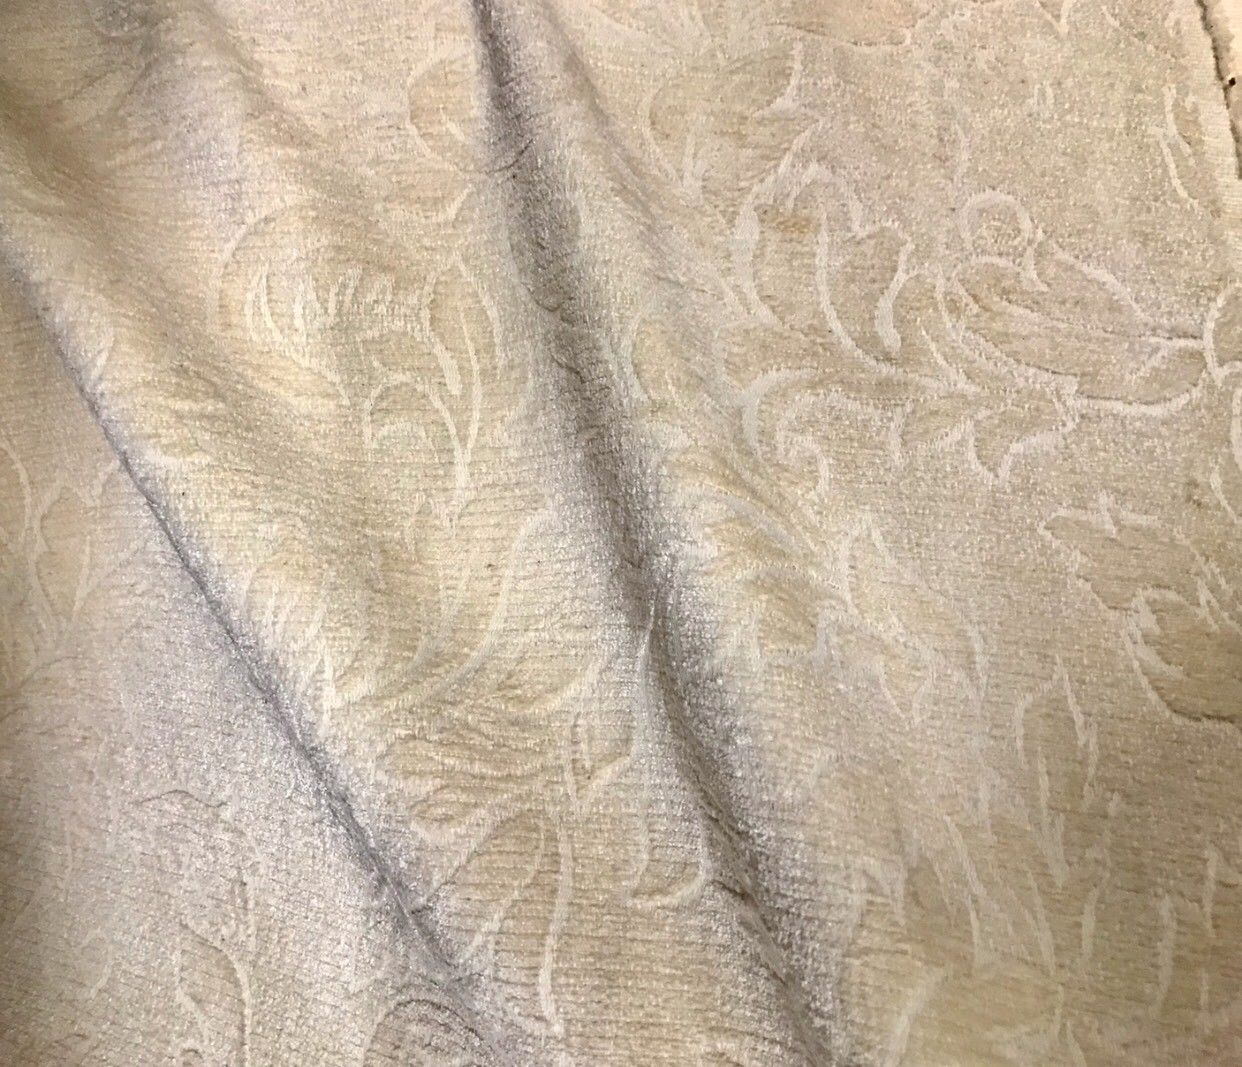 SWATCH Designer Floral Burnout Chenille Velvet Fabric - Brocade- Cream - Fancy Styles Fabric Boutique